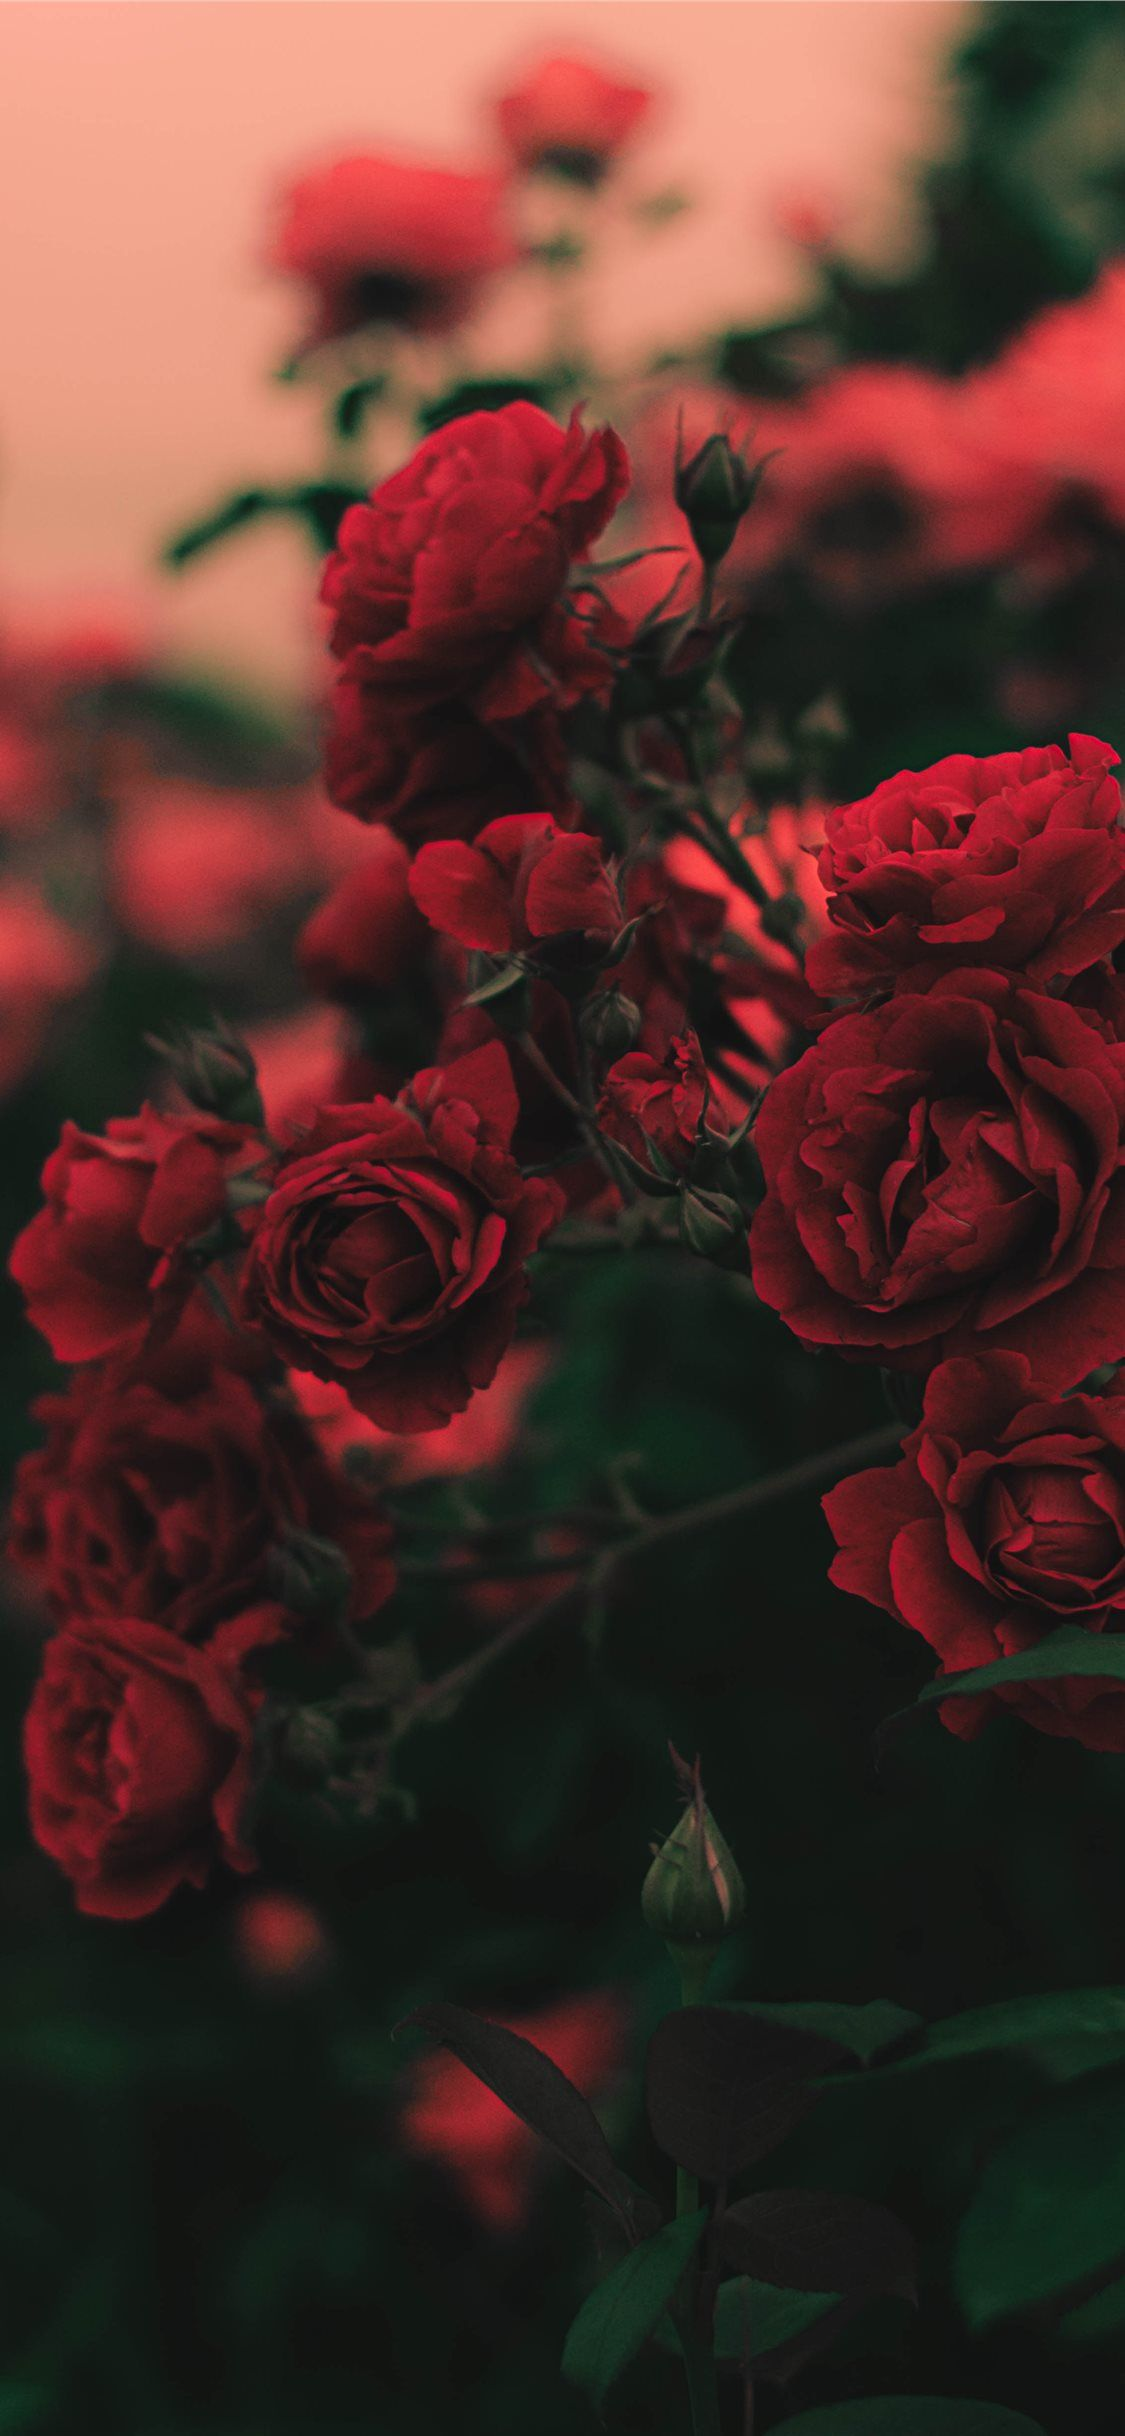 Free Download The Flower Wallpaper Beaty Your Iphone Flower Rose Bloom Wallpaper Back In 2020 Wallpaper Iphone Roses Red Roses Wallpaper Flower Phone Wallpaper